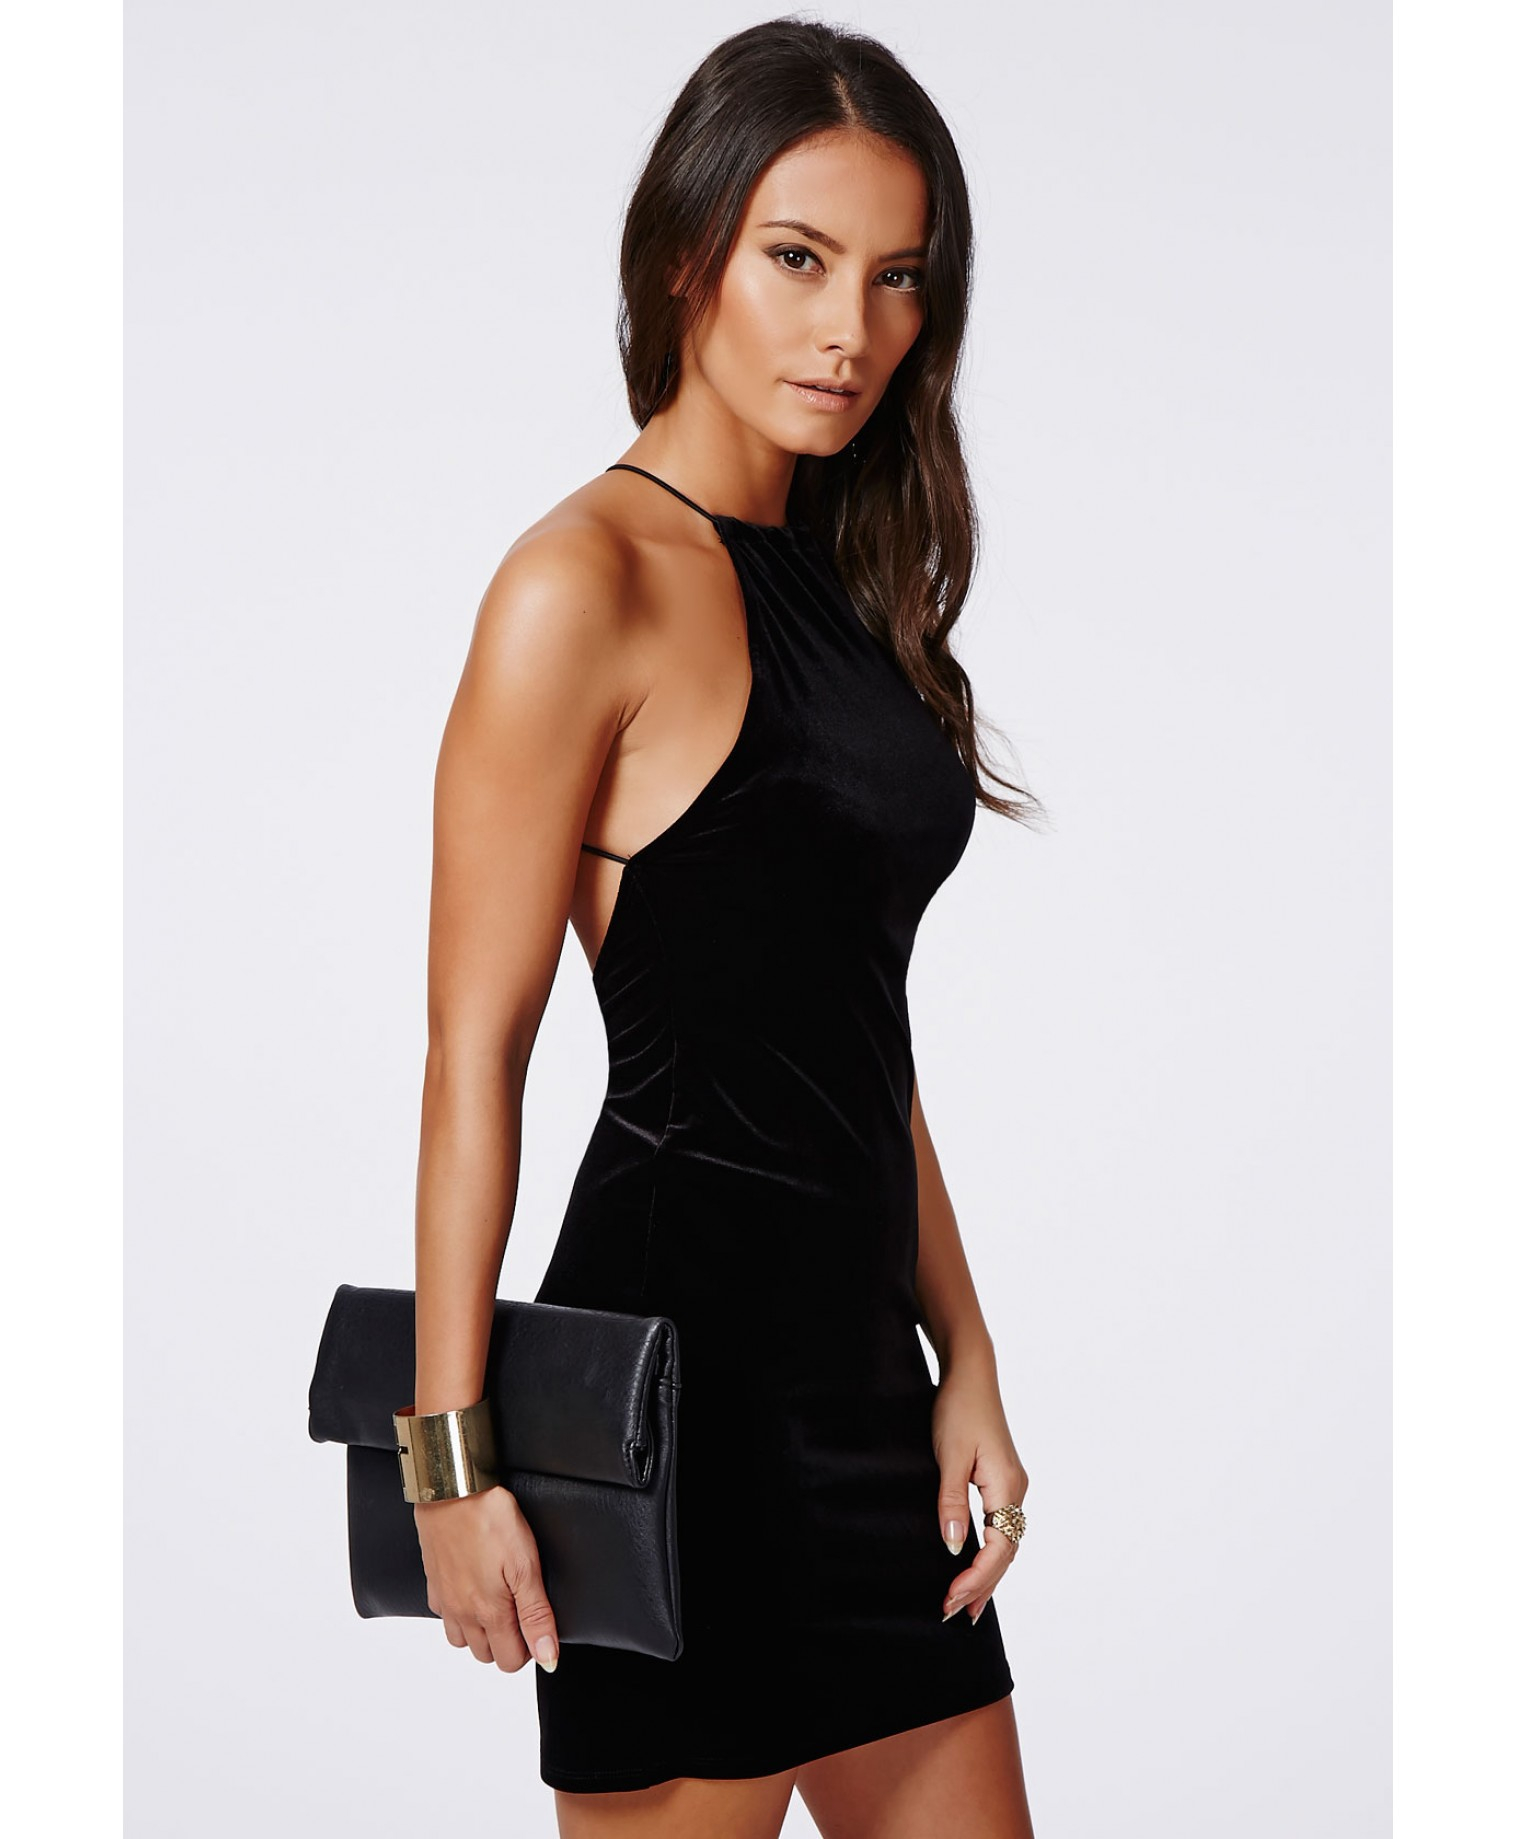 Missguided Masumi Velvet Strappy Bodycon Dress Black in Black | Lyst